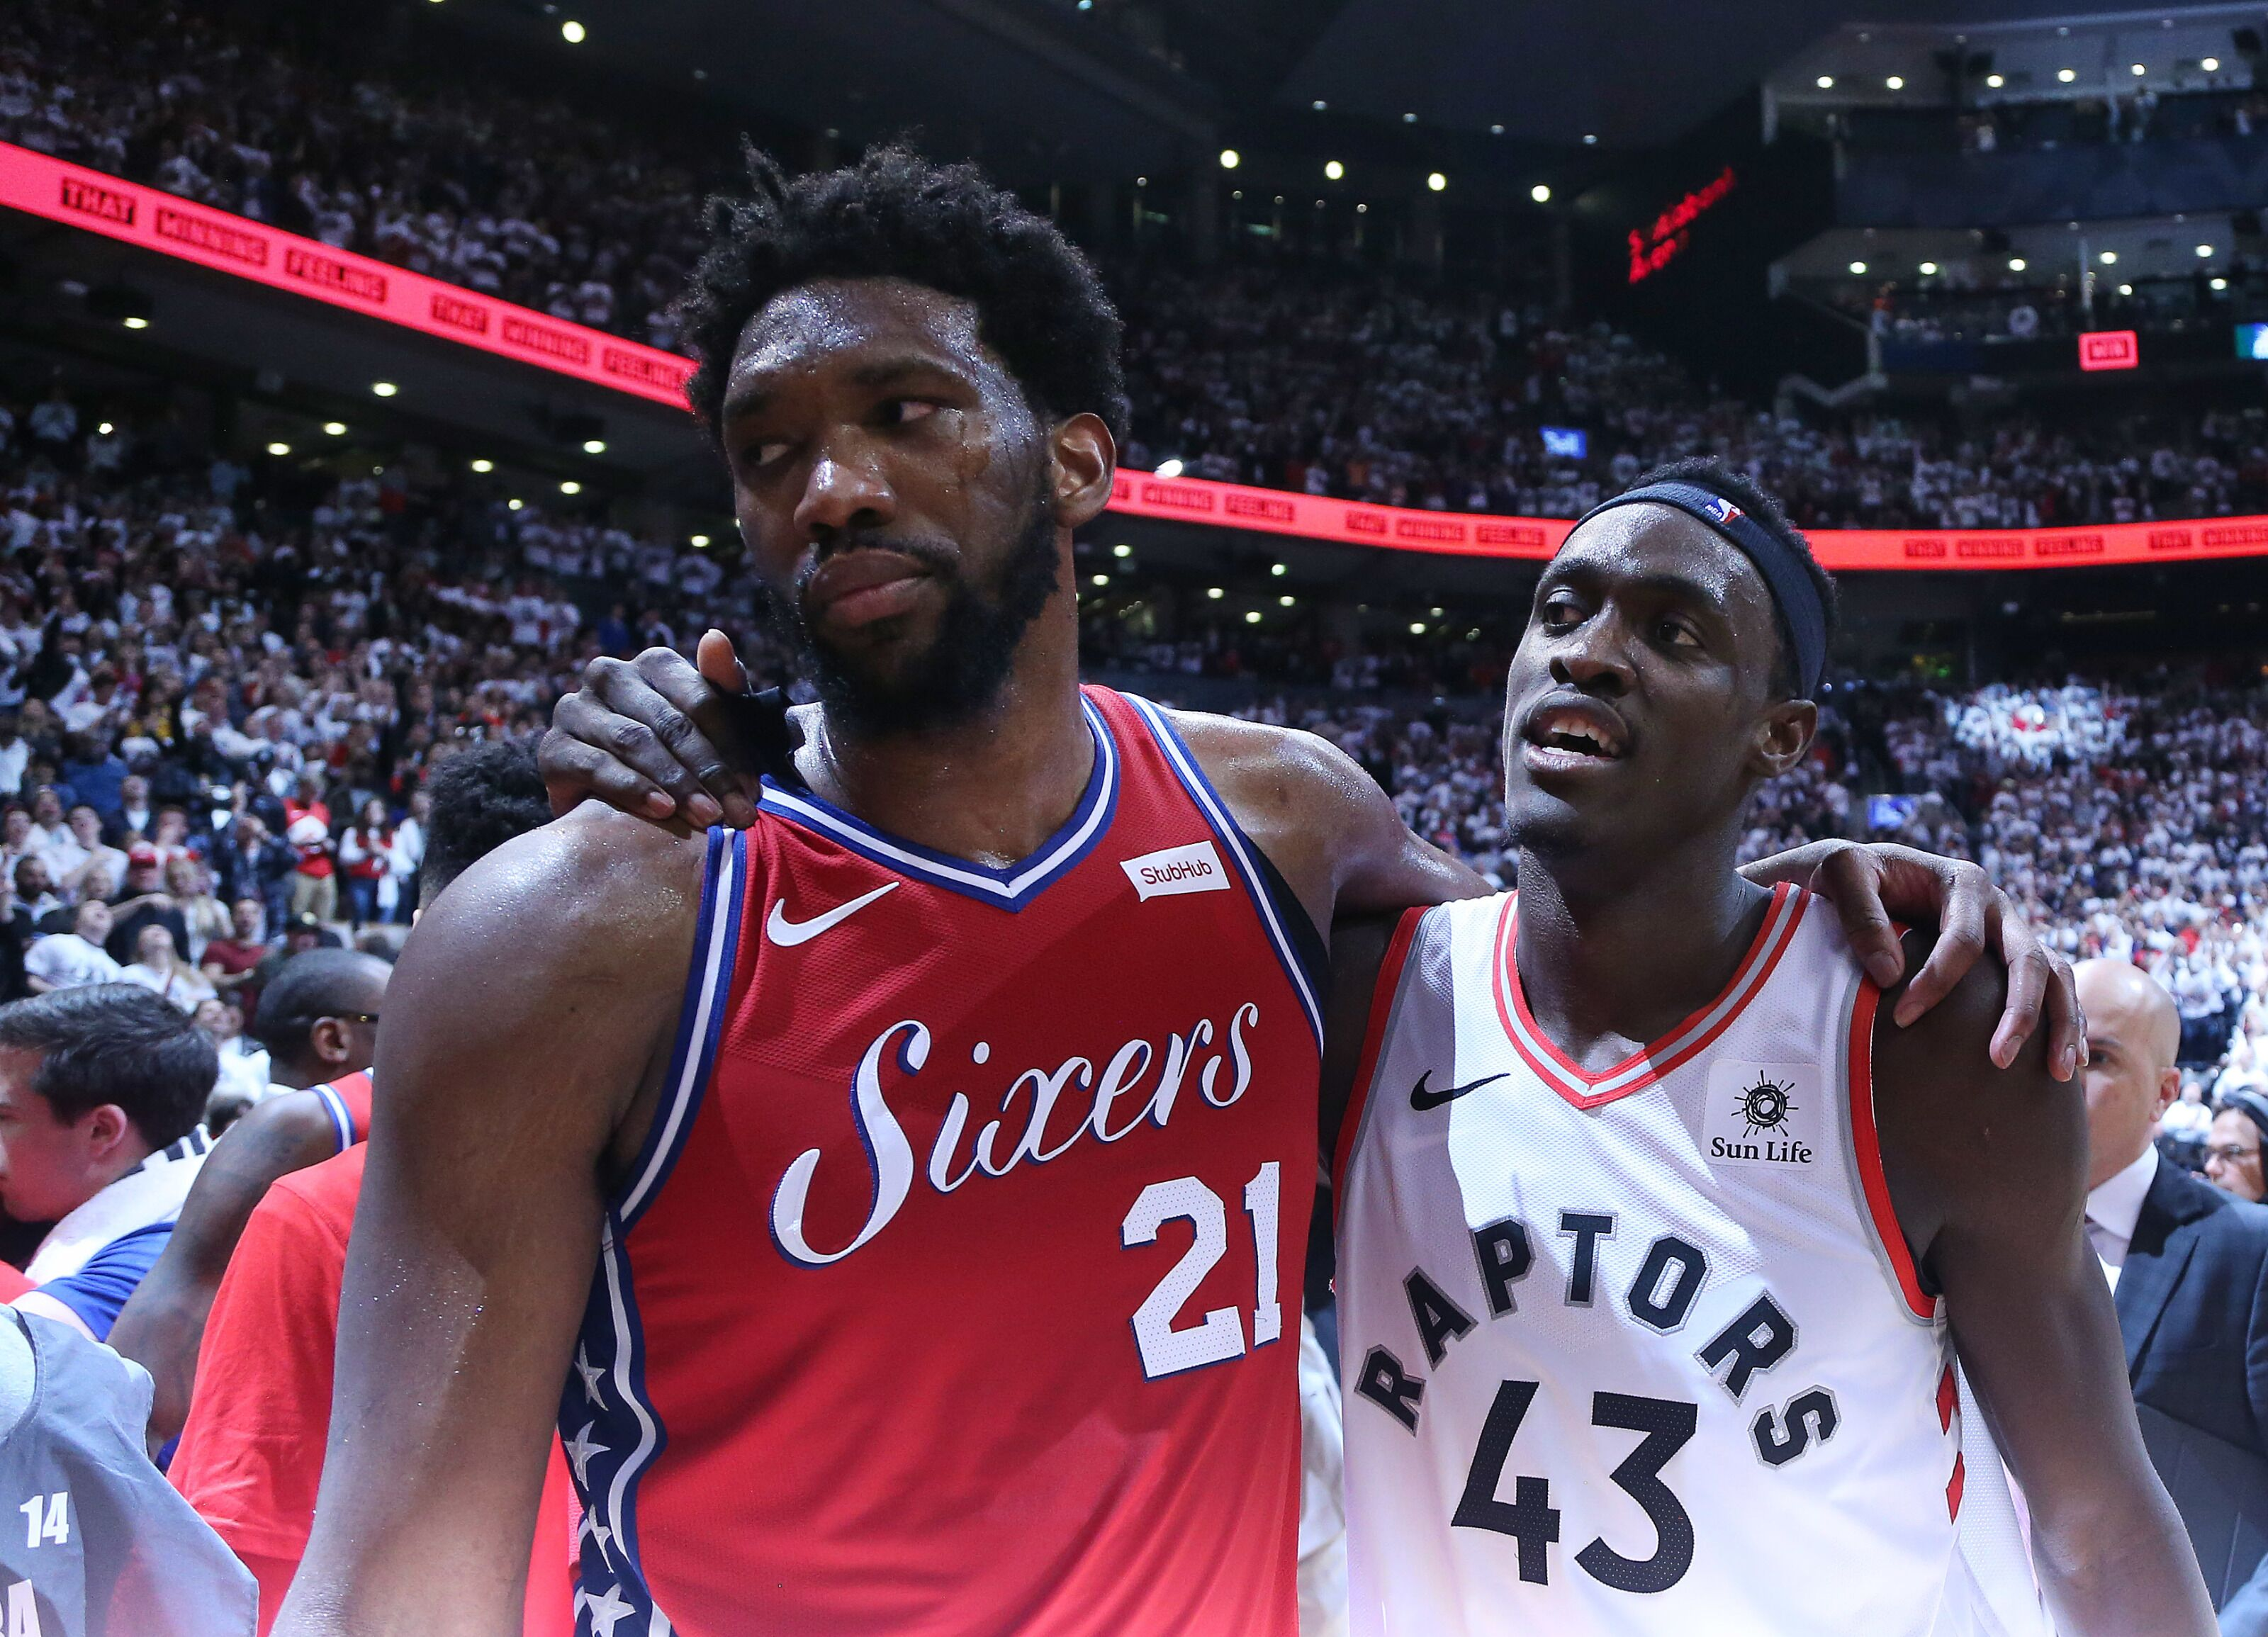 Philadelphia 76ers: Raptors' Finals appearance reinforces the need to run it back